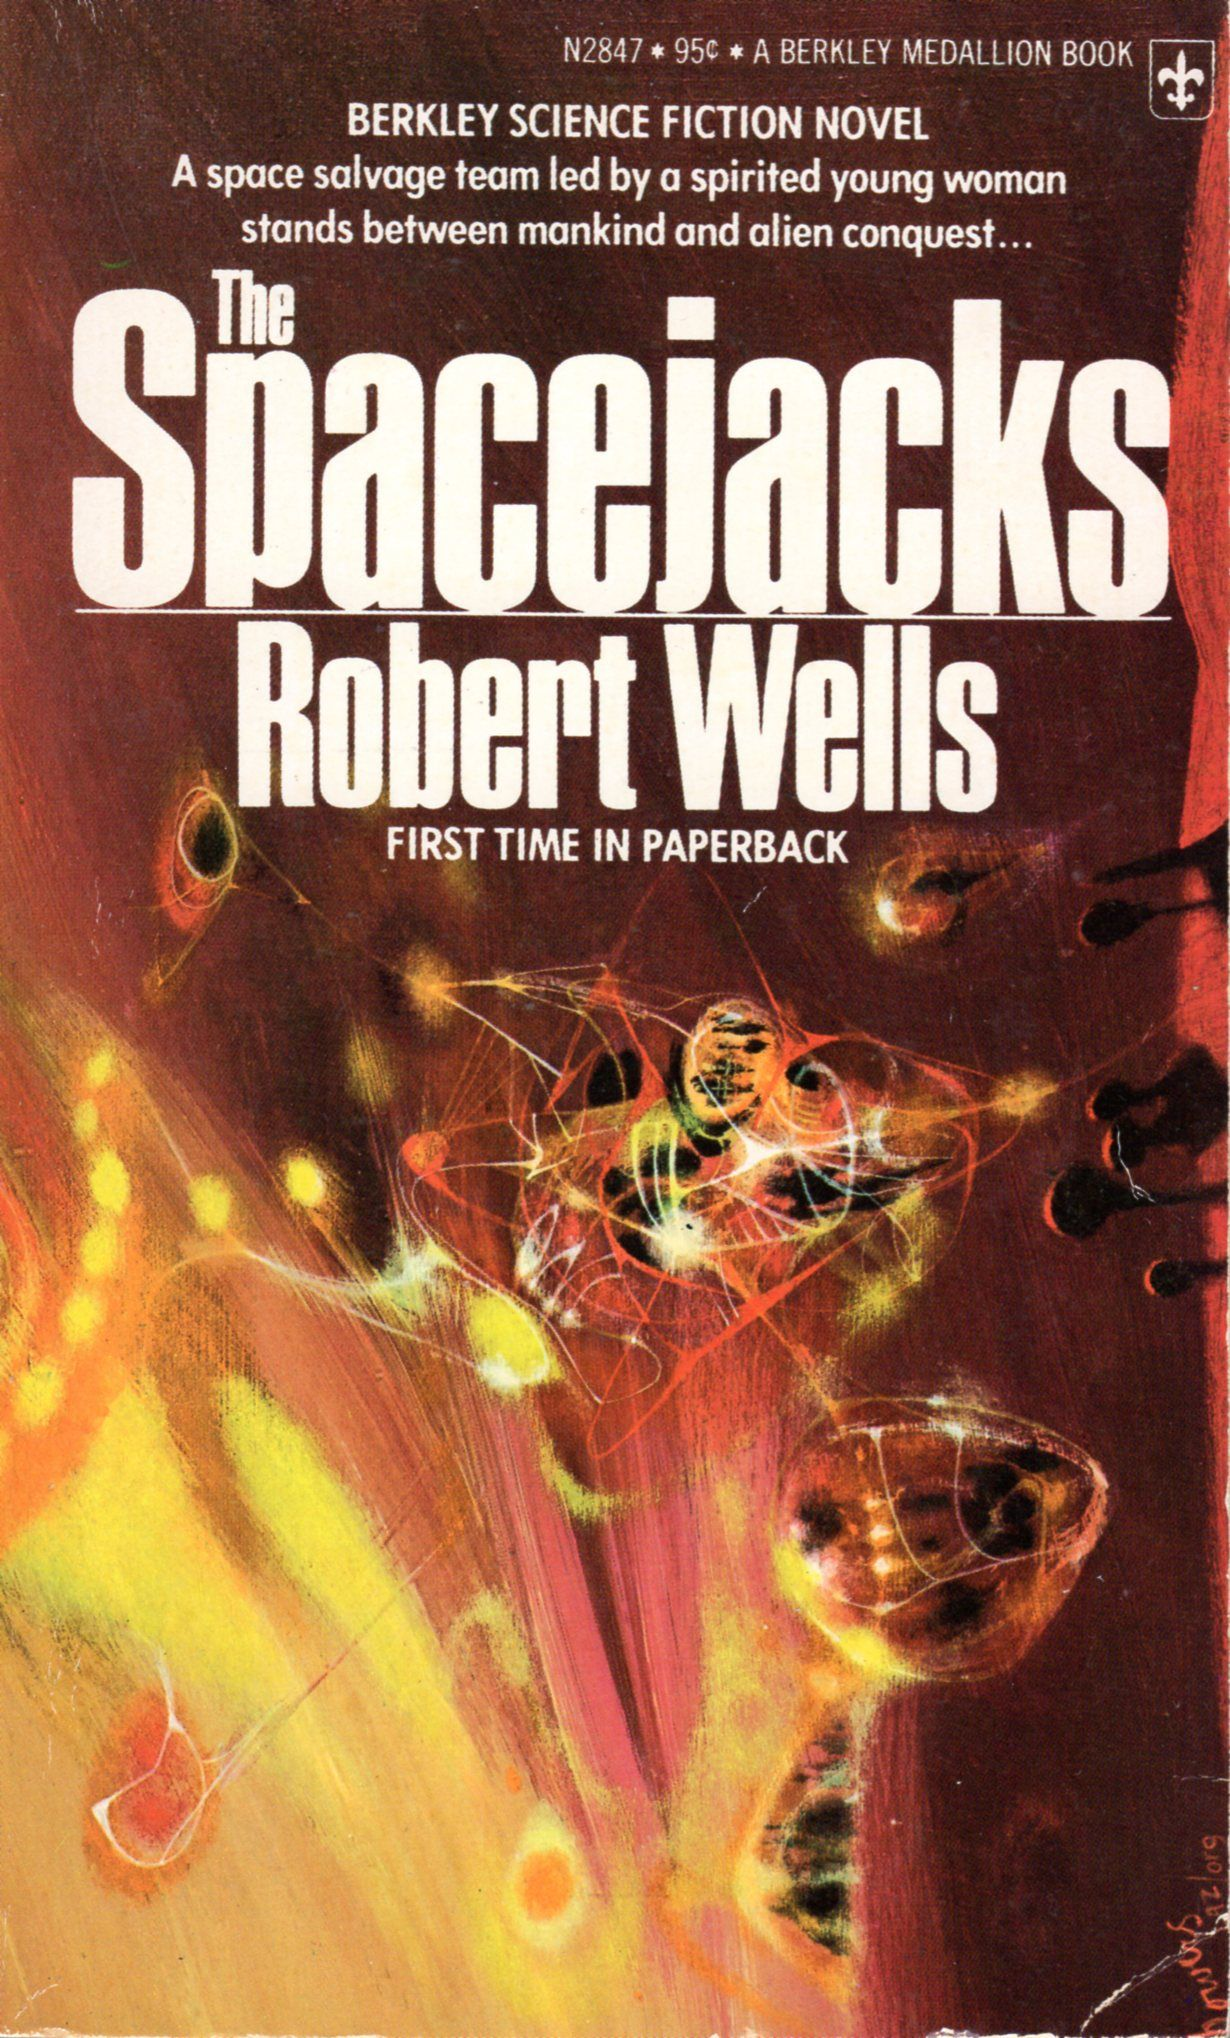 The Spacejacks Robert Wells Cover By Richard Powers Science Fiction Illustration Fiction Science Fiction